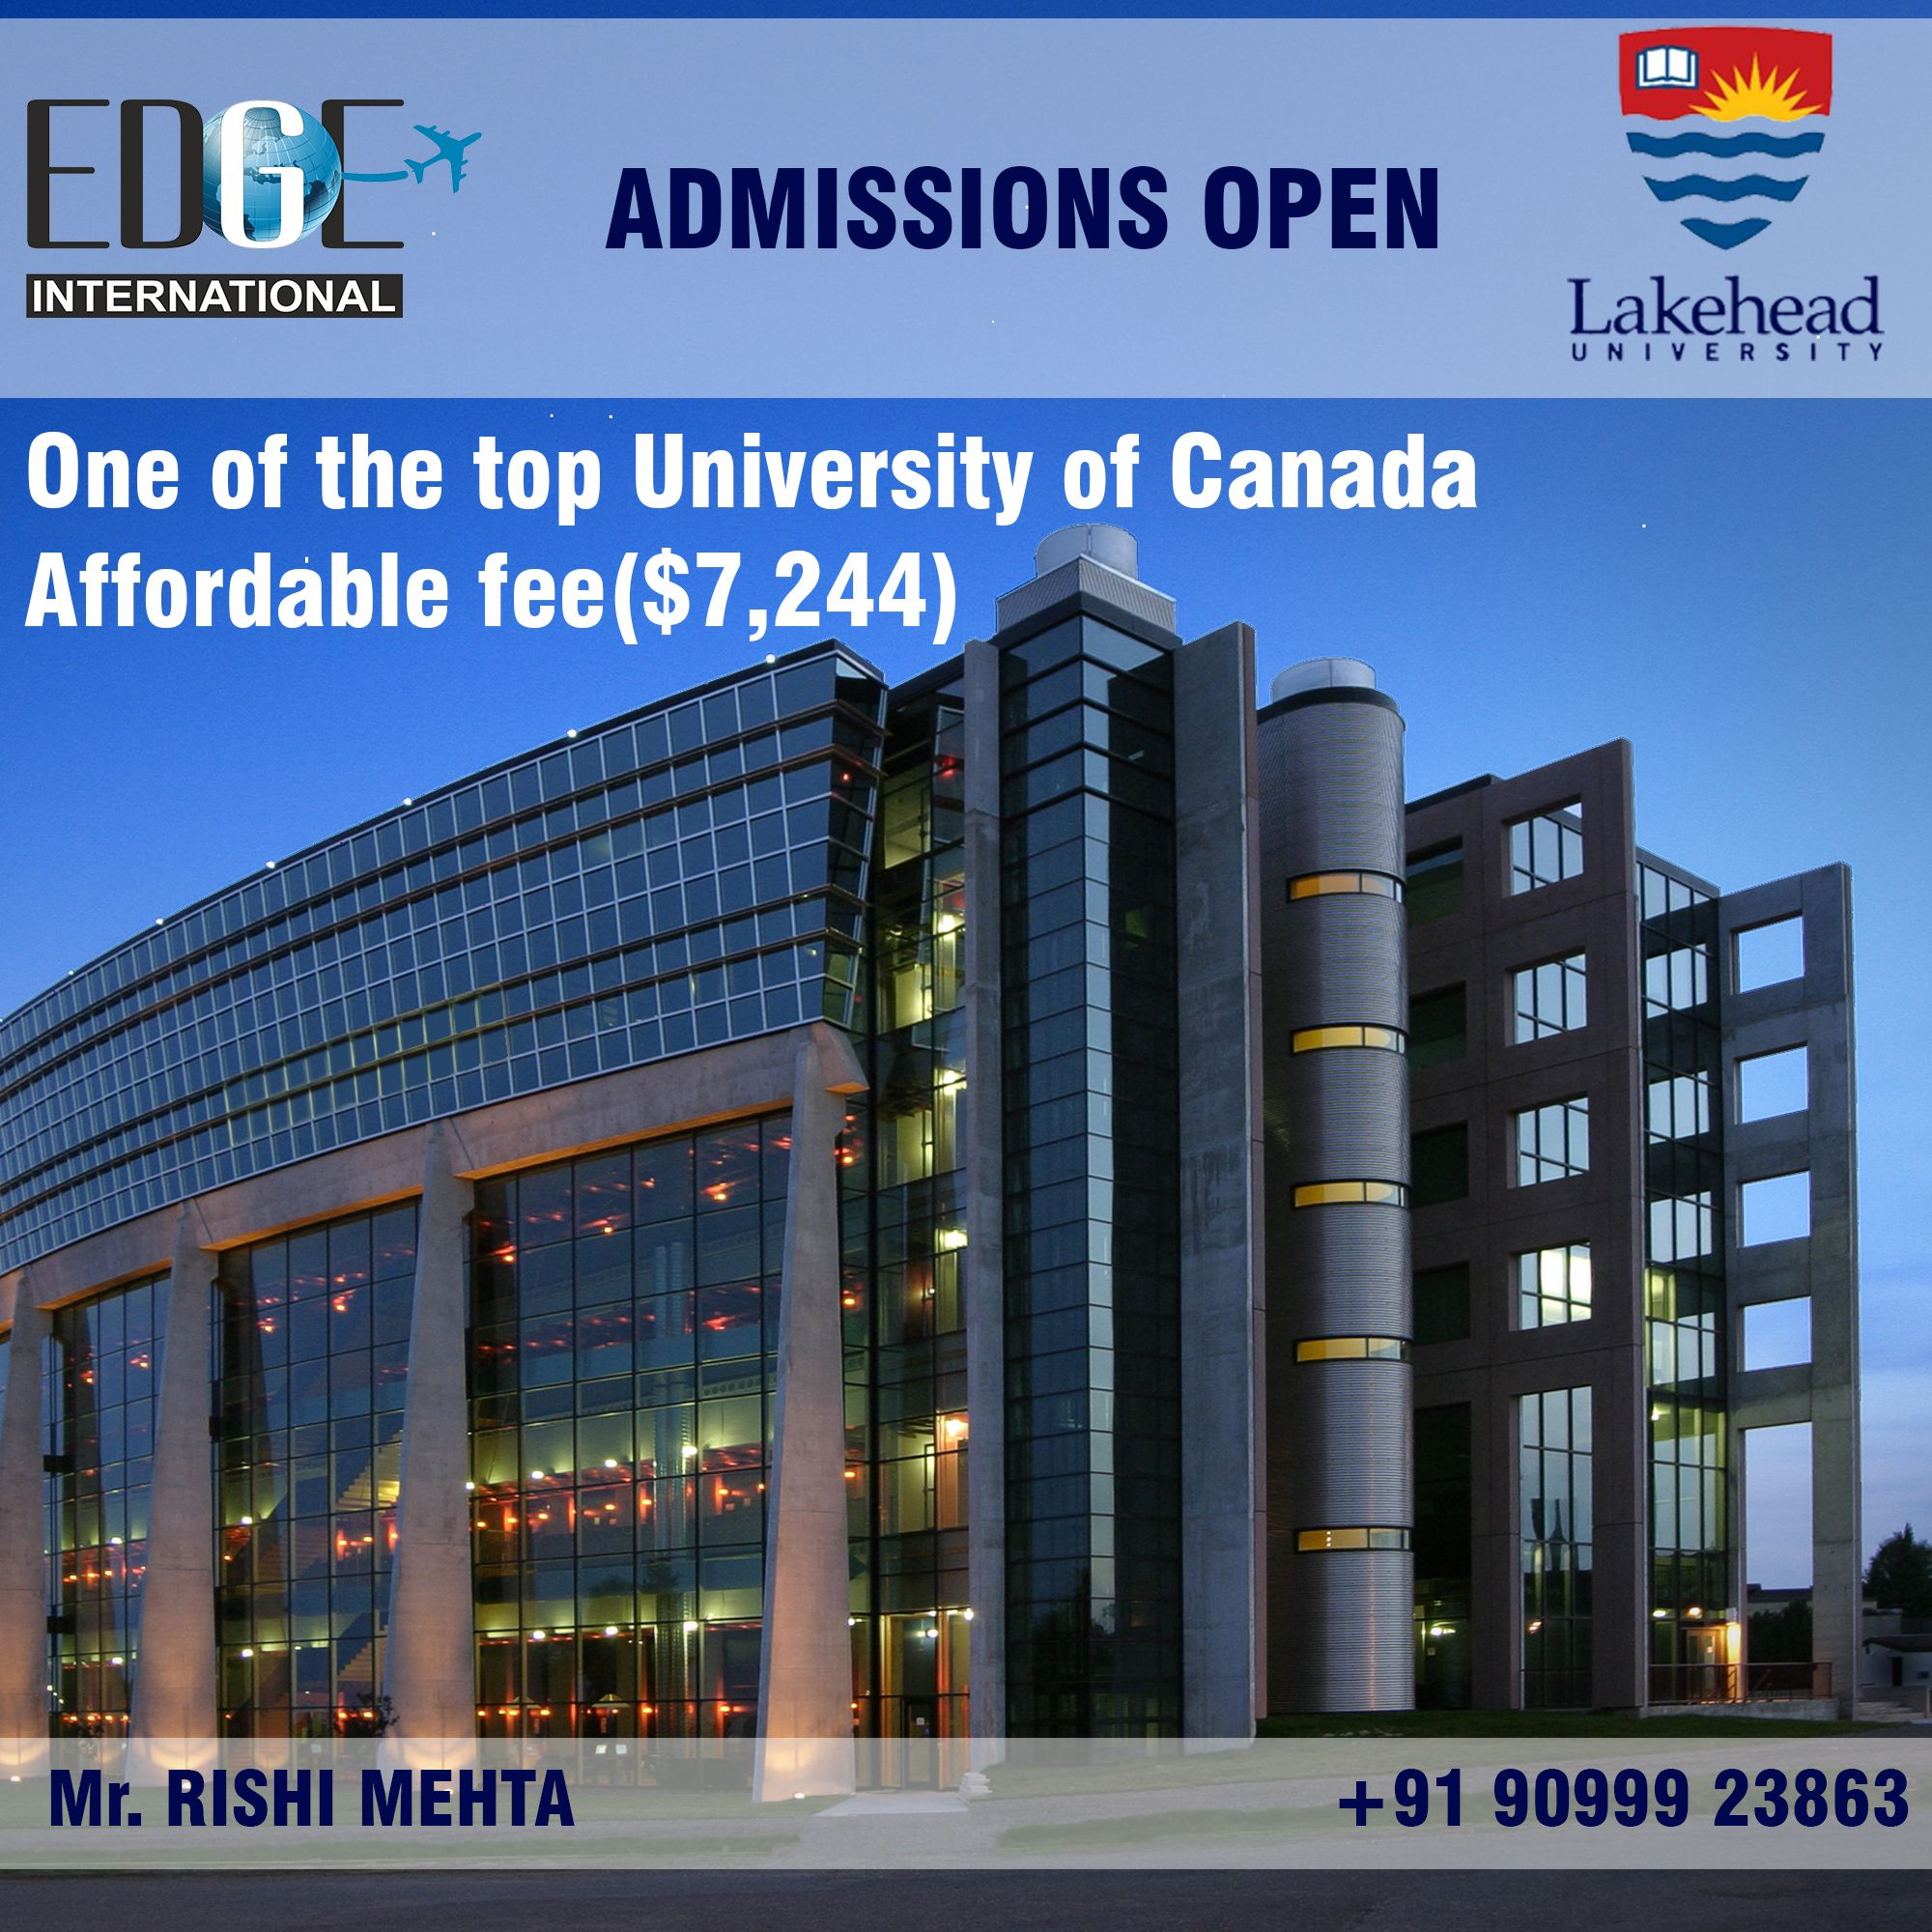 Study At Lakehead University In Canada Lakehead Is A Public University With Campuses In Thunderbay O Top Universities Overseas Education Lakehead University